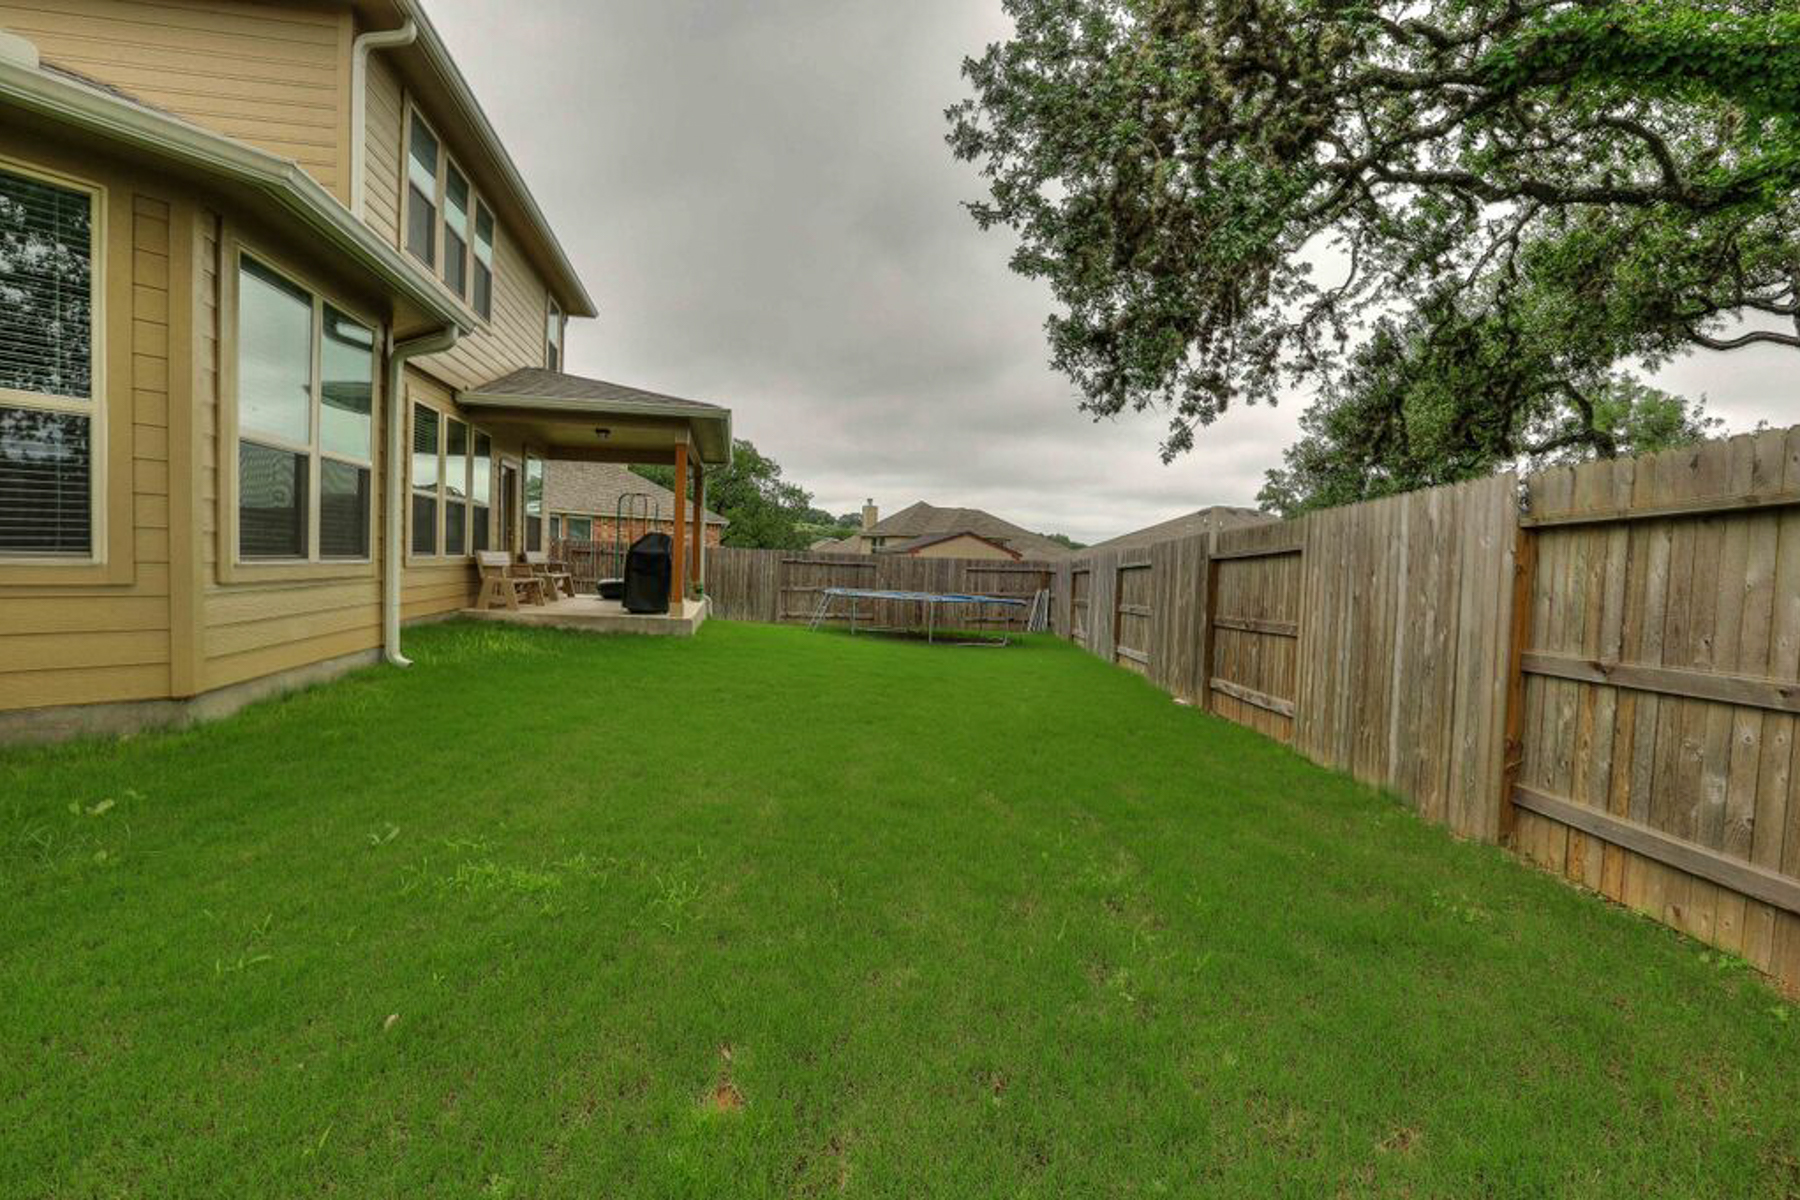 Additional photo for property listing at Rental in Sesirable Woods of Frederick Creek 109 Windsor Dr Boerne, Texas 78006 United States